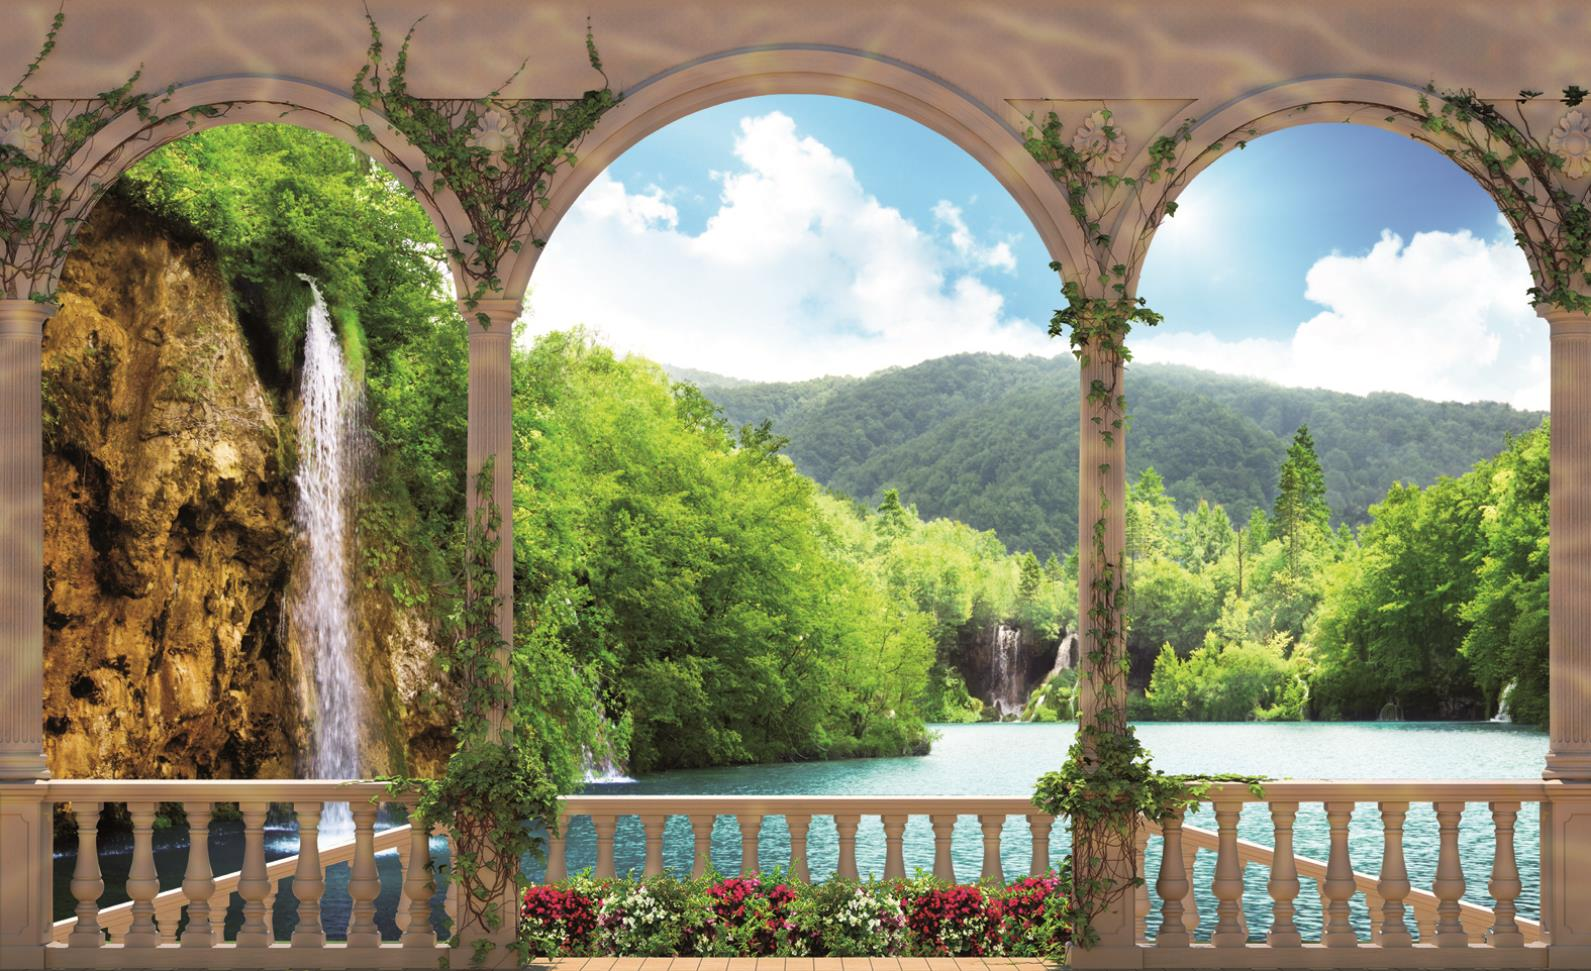 WALL MURAL PHOTO WALLPAPER PICTURE 1079VE Arches Landscape Lake 1591x971